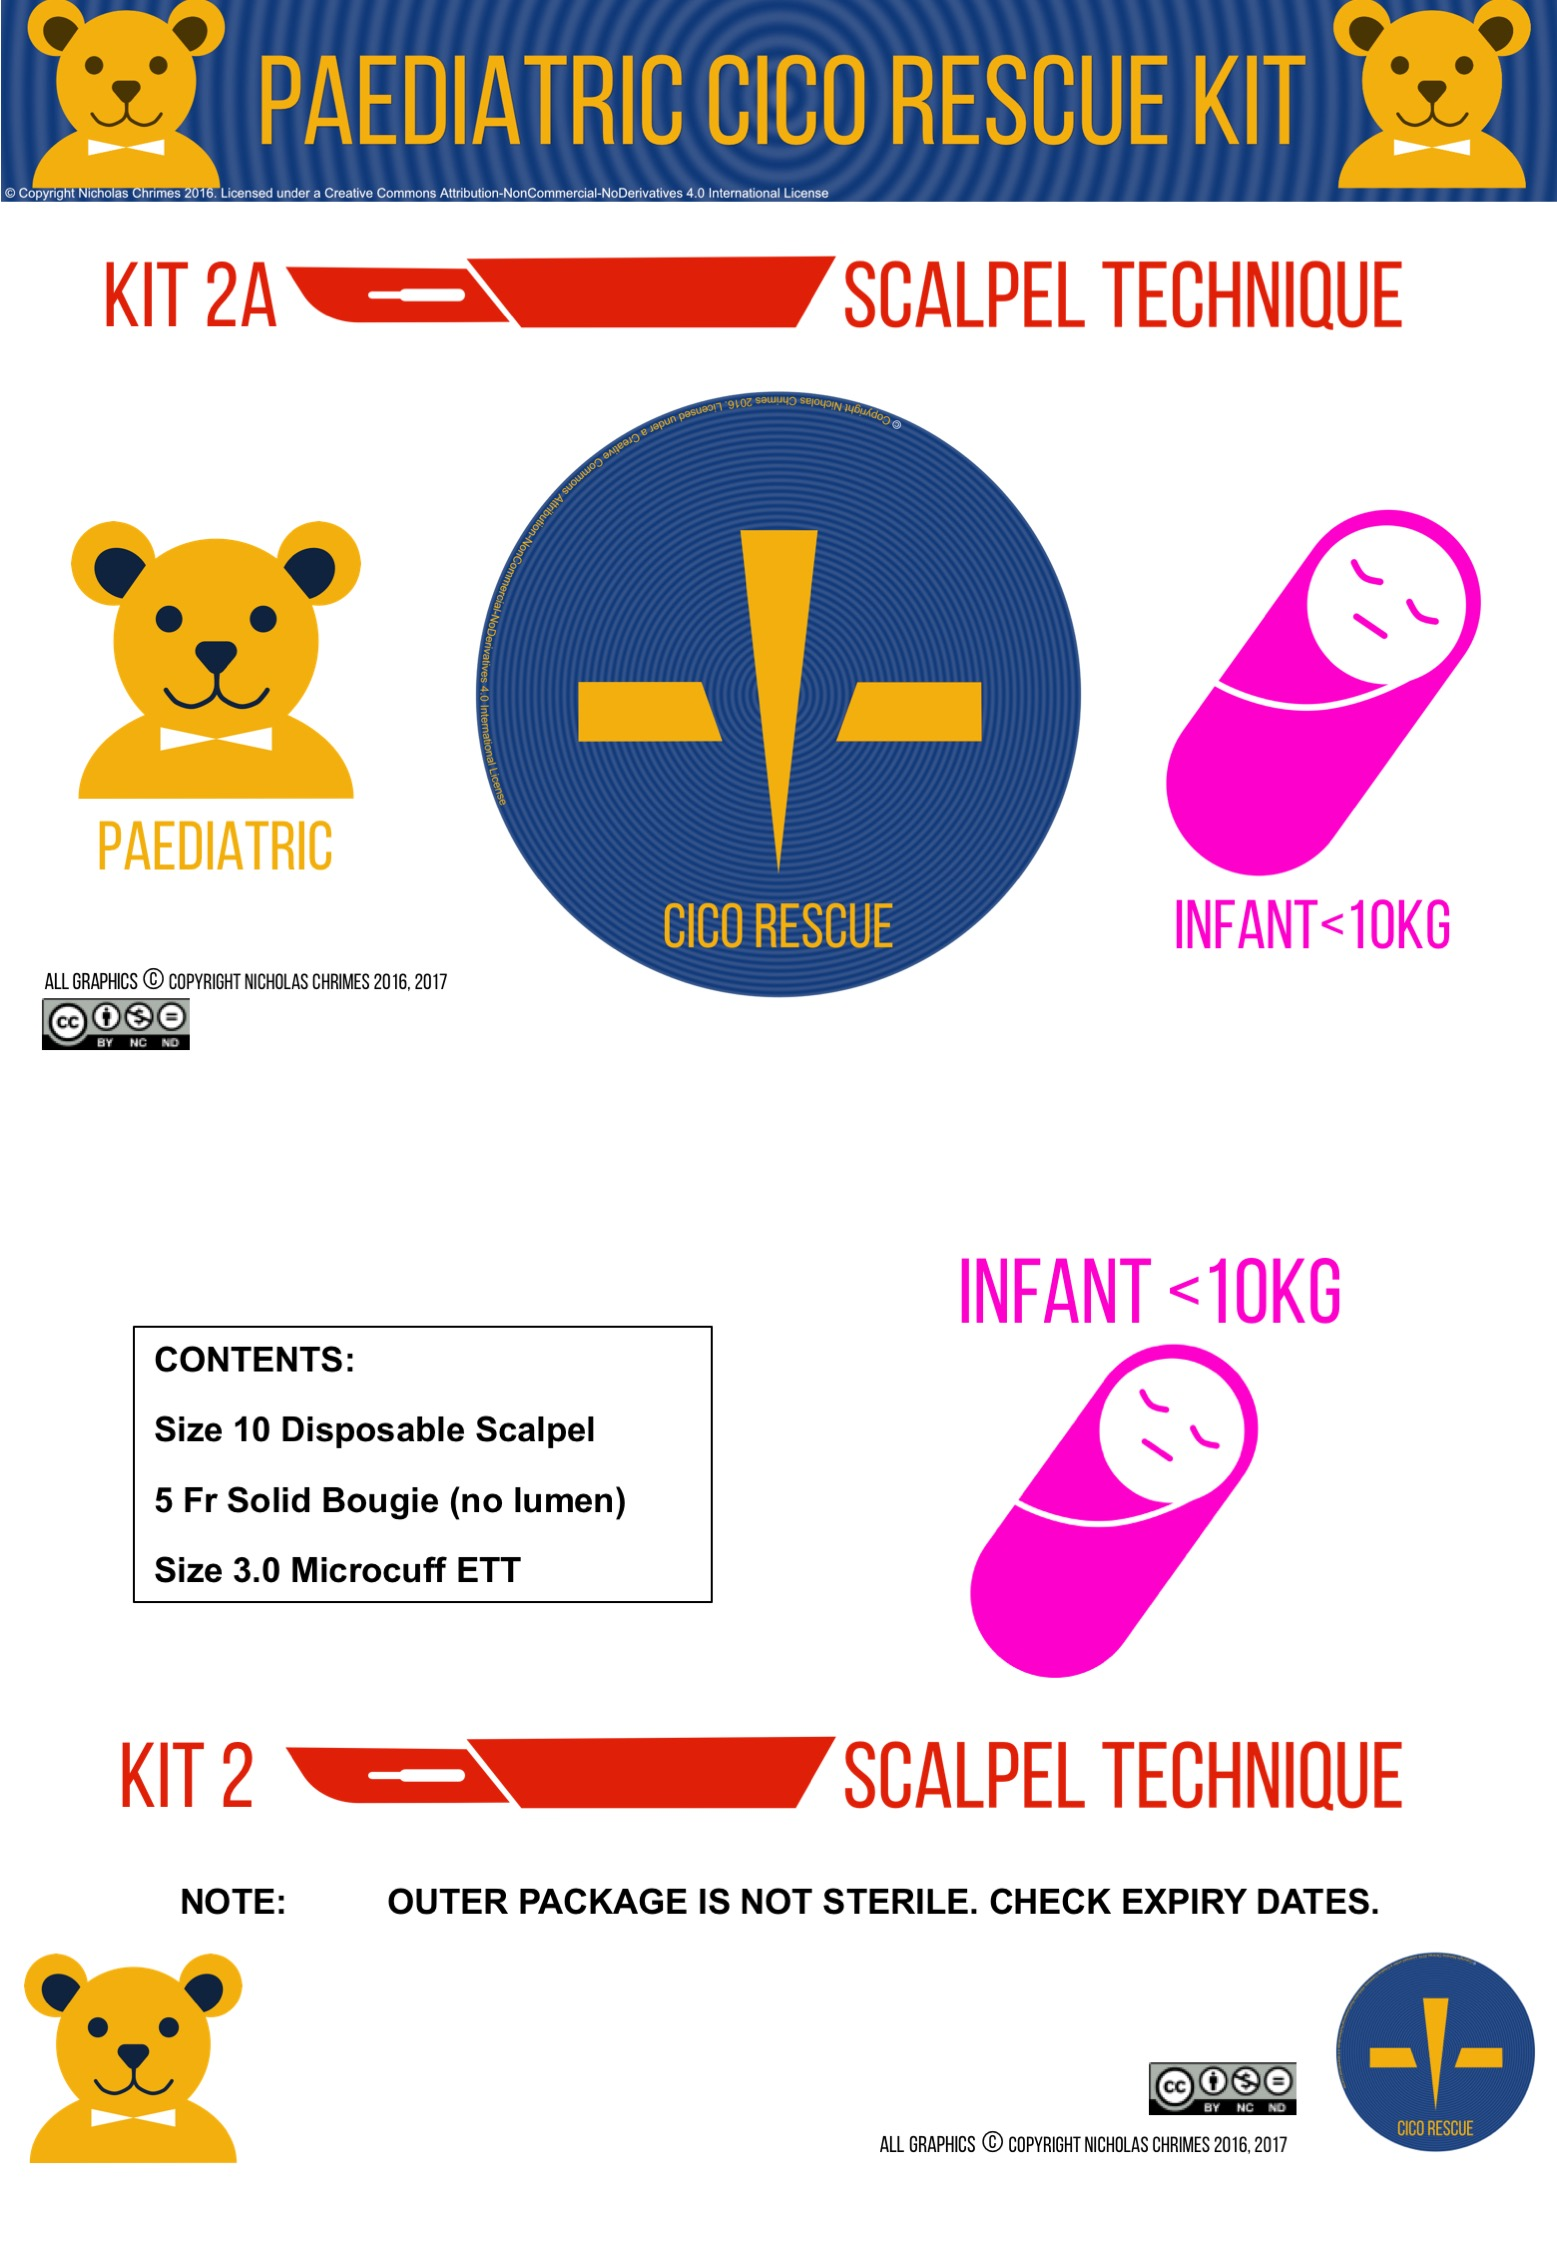 Infant Scalpel CICO Rescue Kit - Complete Labels & Contents